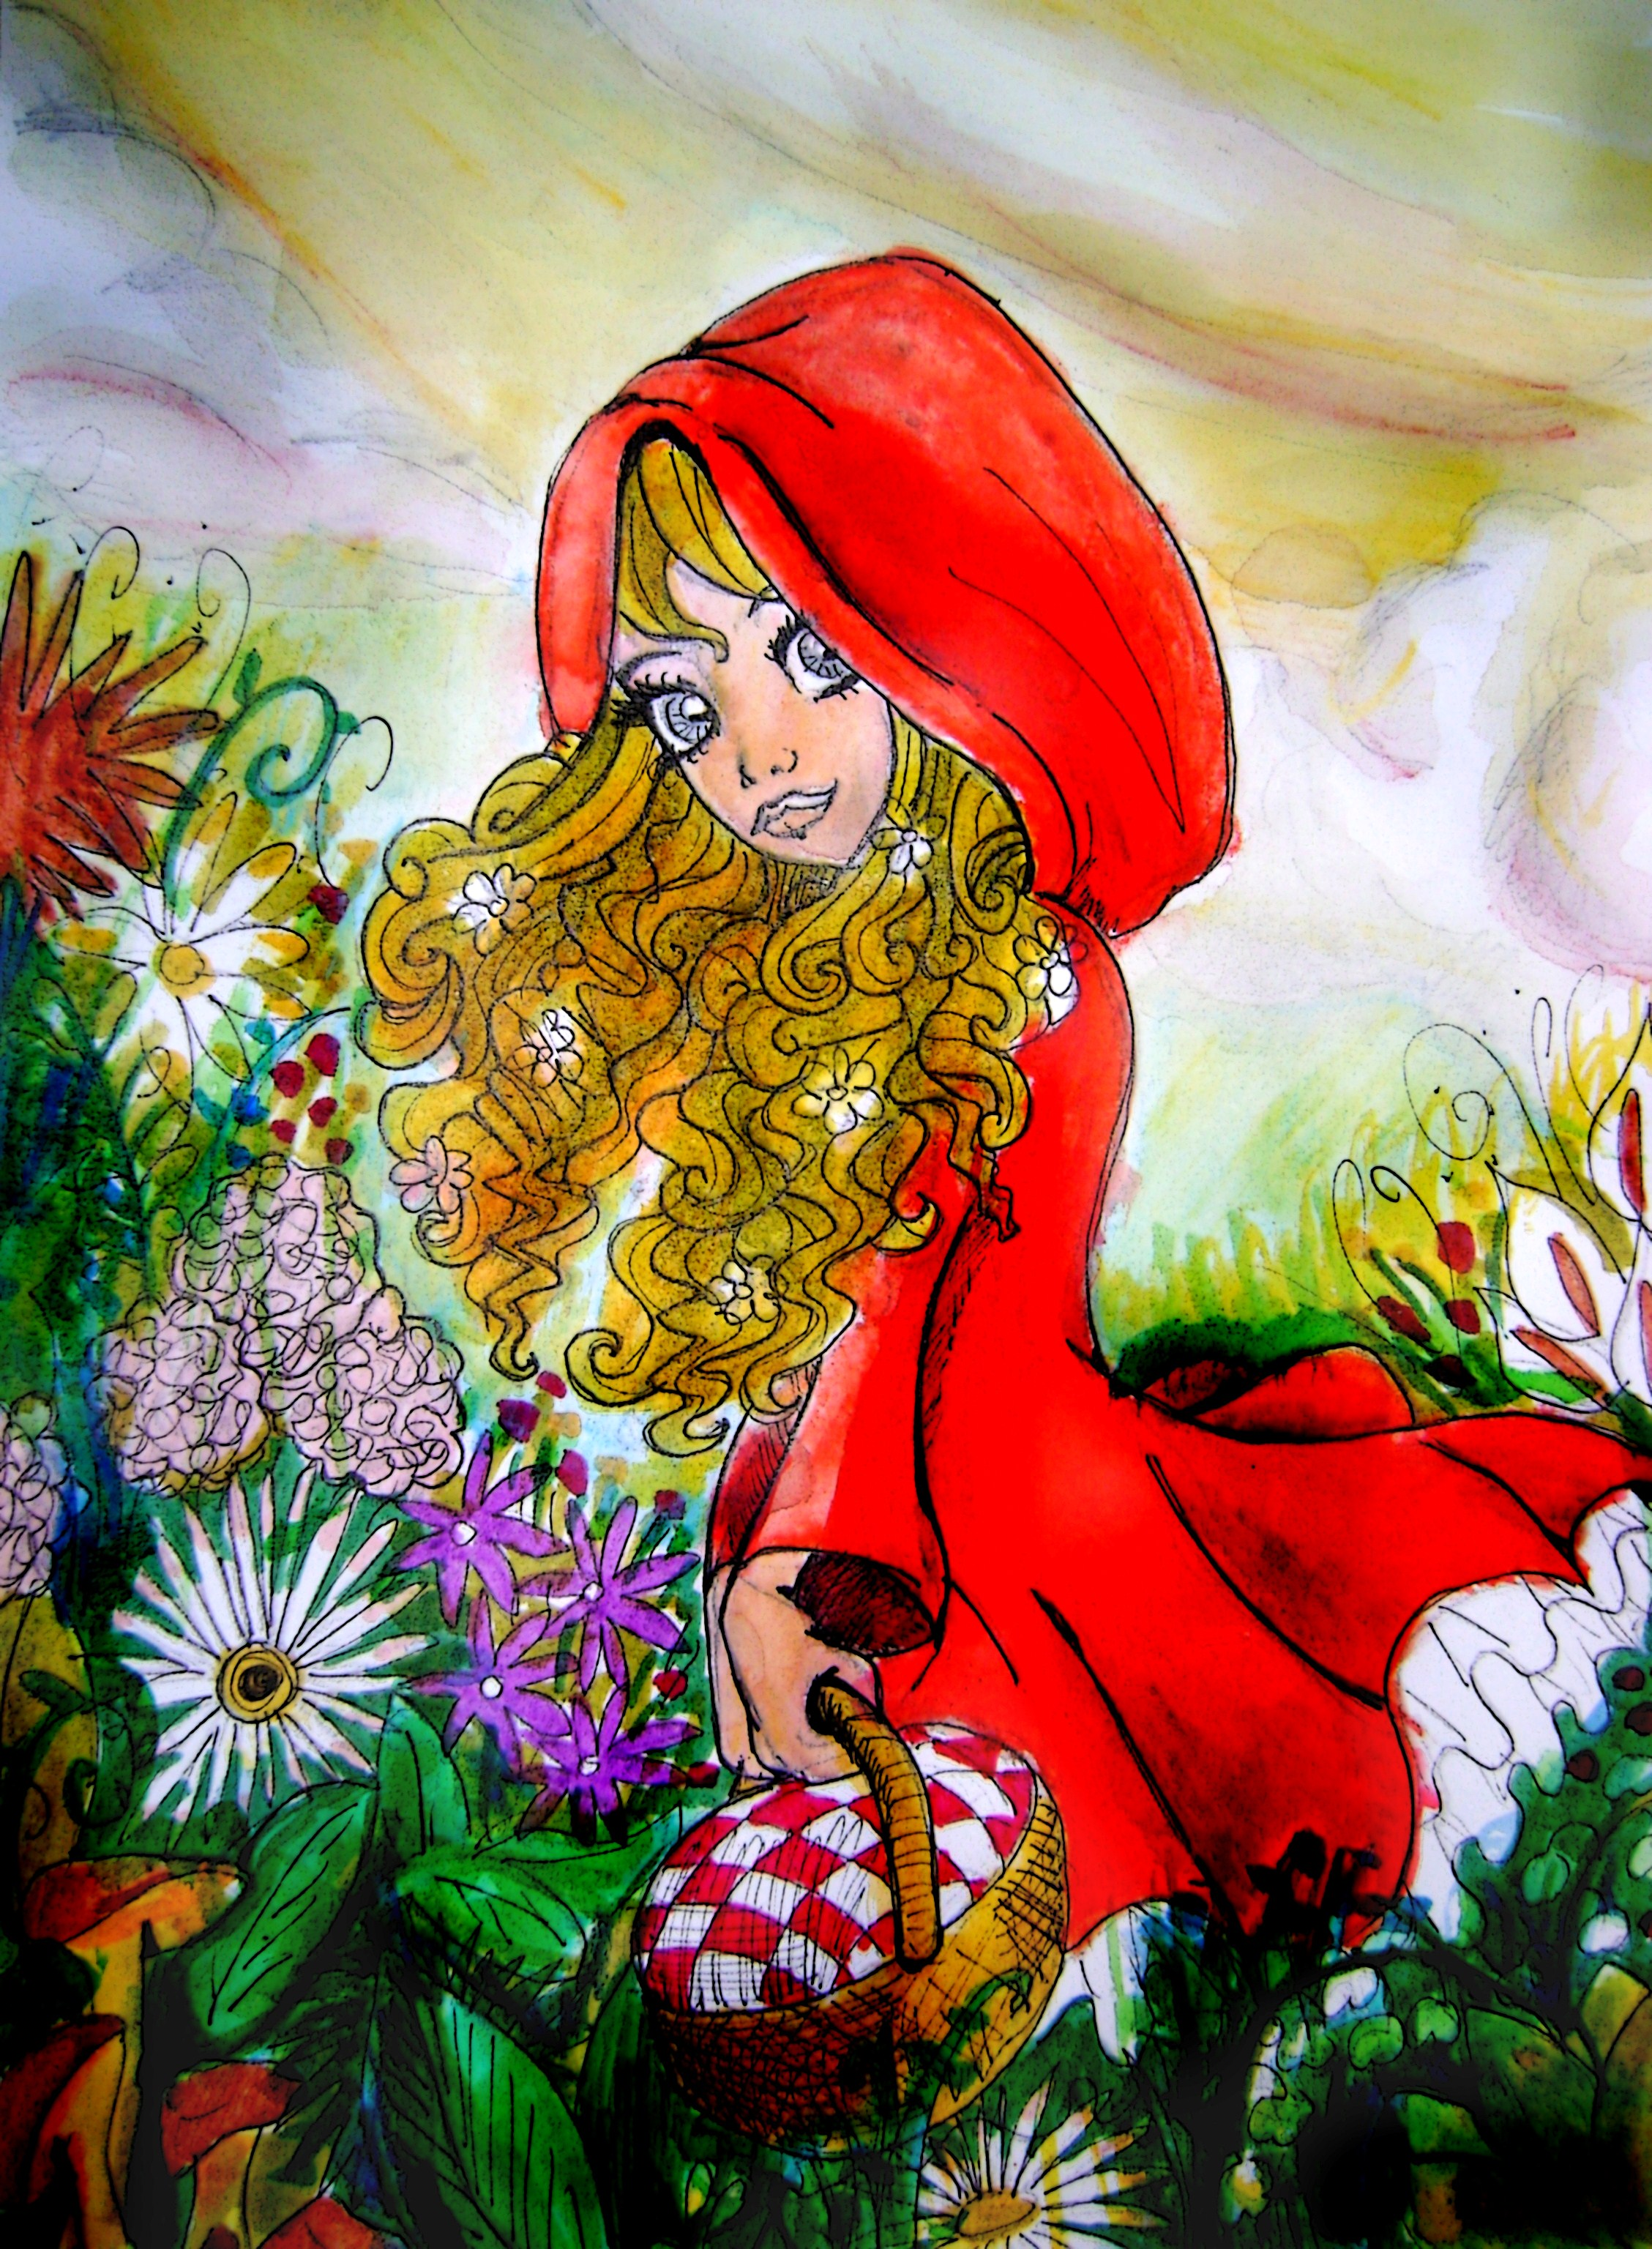 little red riding hood revisited by Le chaperon rouge revisite ( little red riding hood revisited naive art, little red, red riding hood, medieval fantasy, big eyes, childrens books.